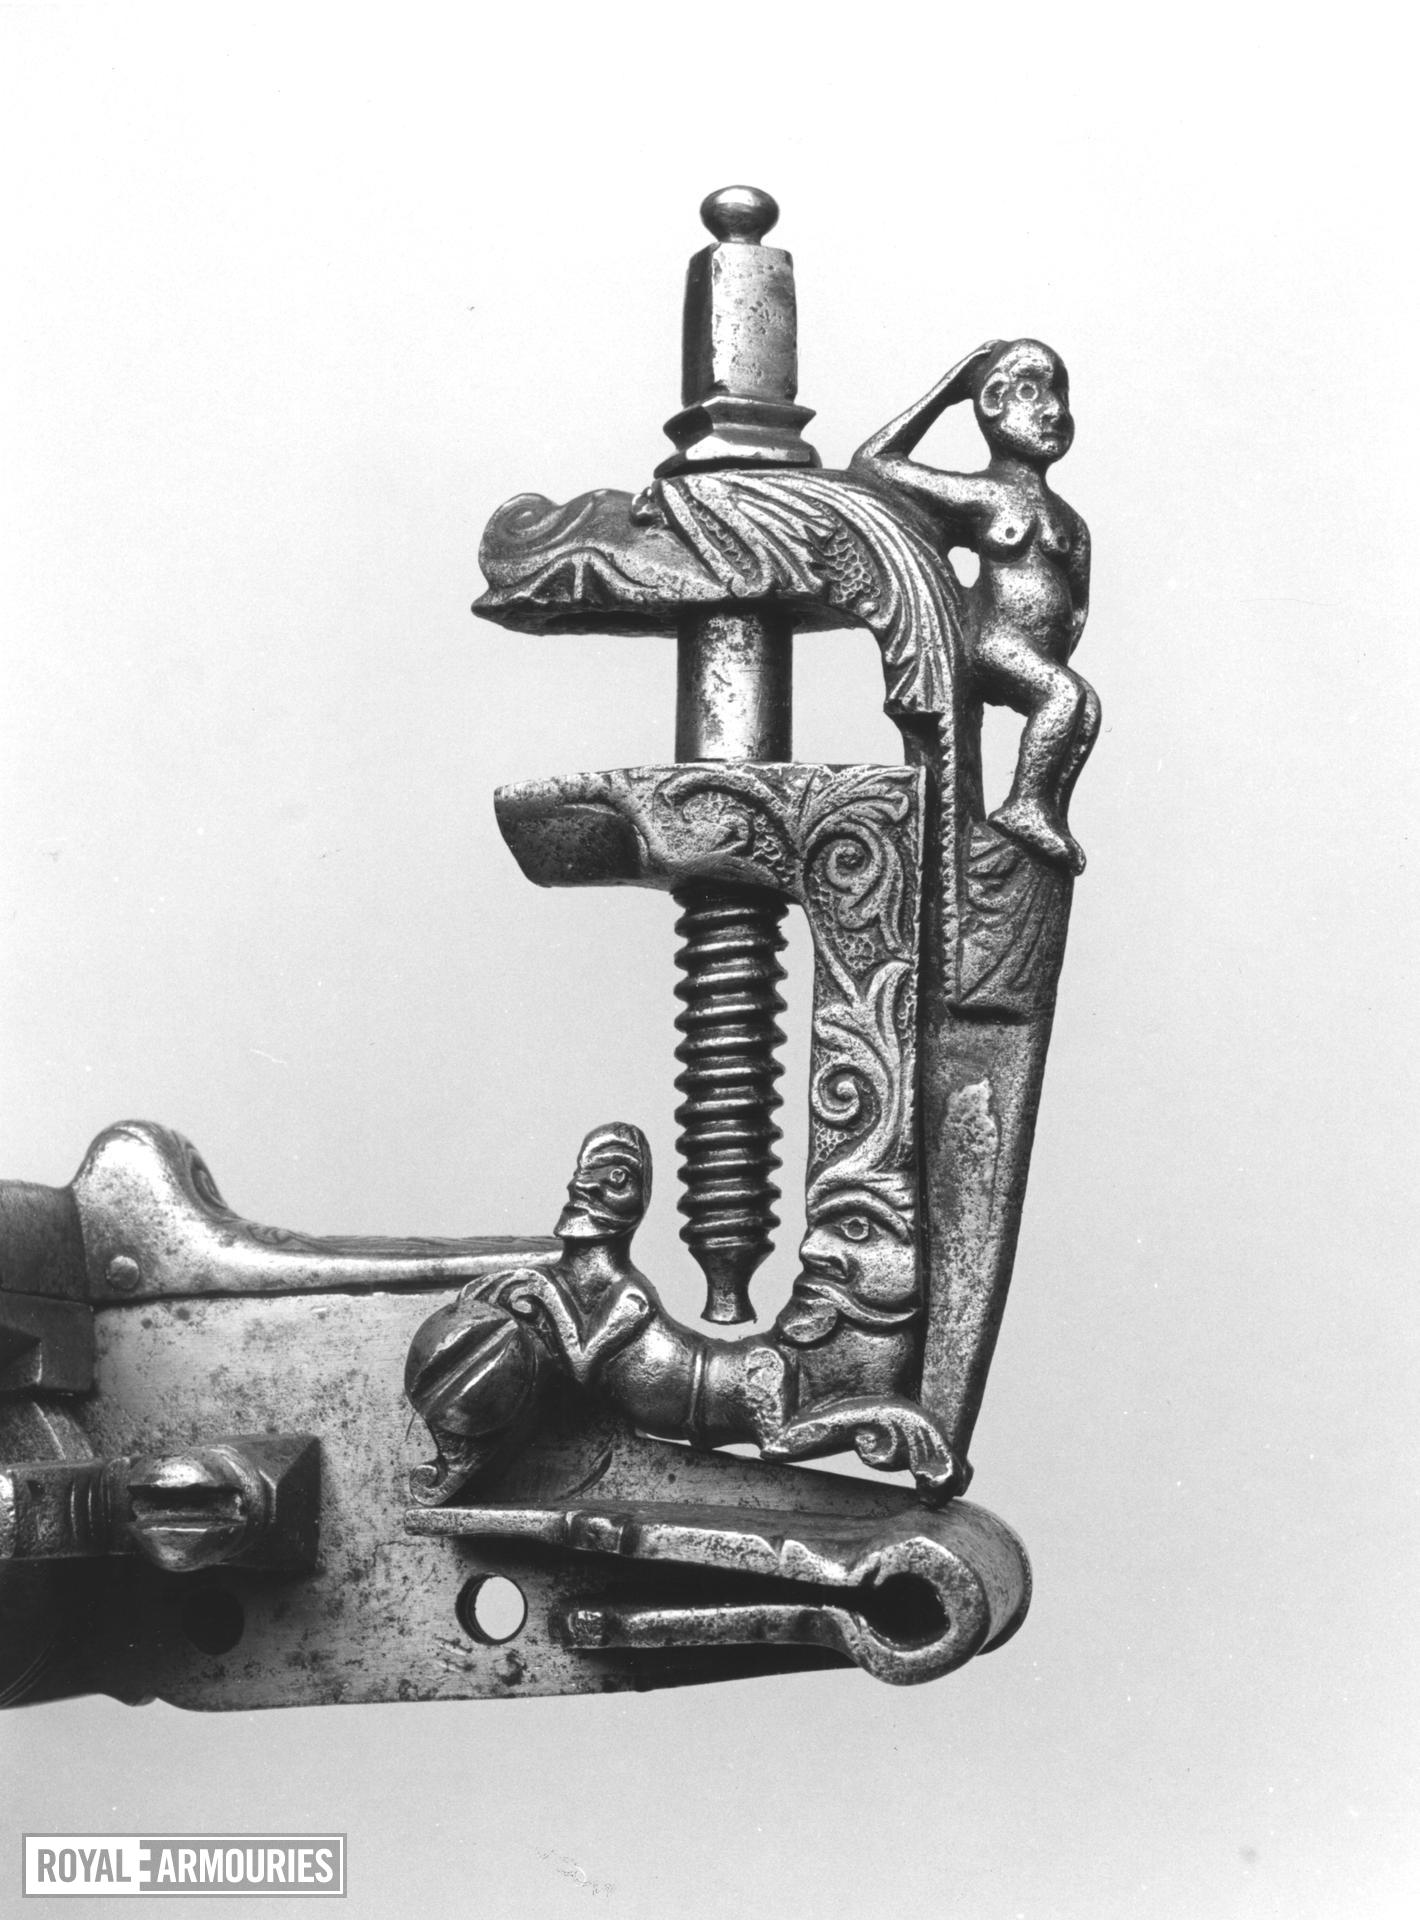 Detached wheellock lock From a large sporting gun